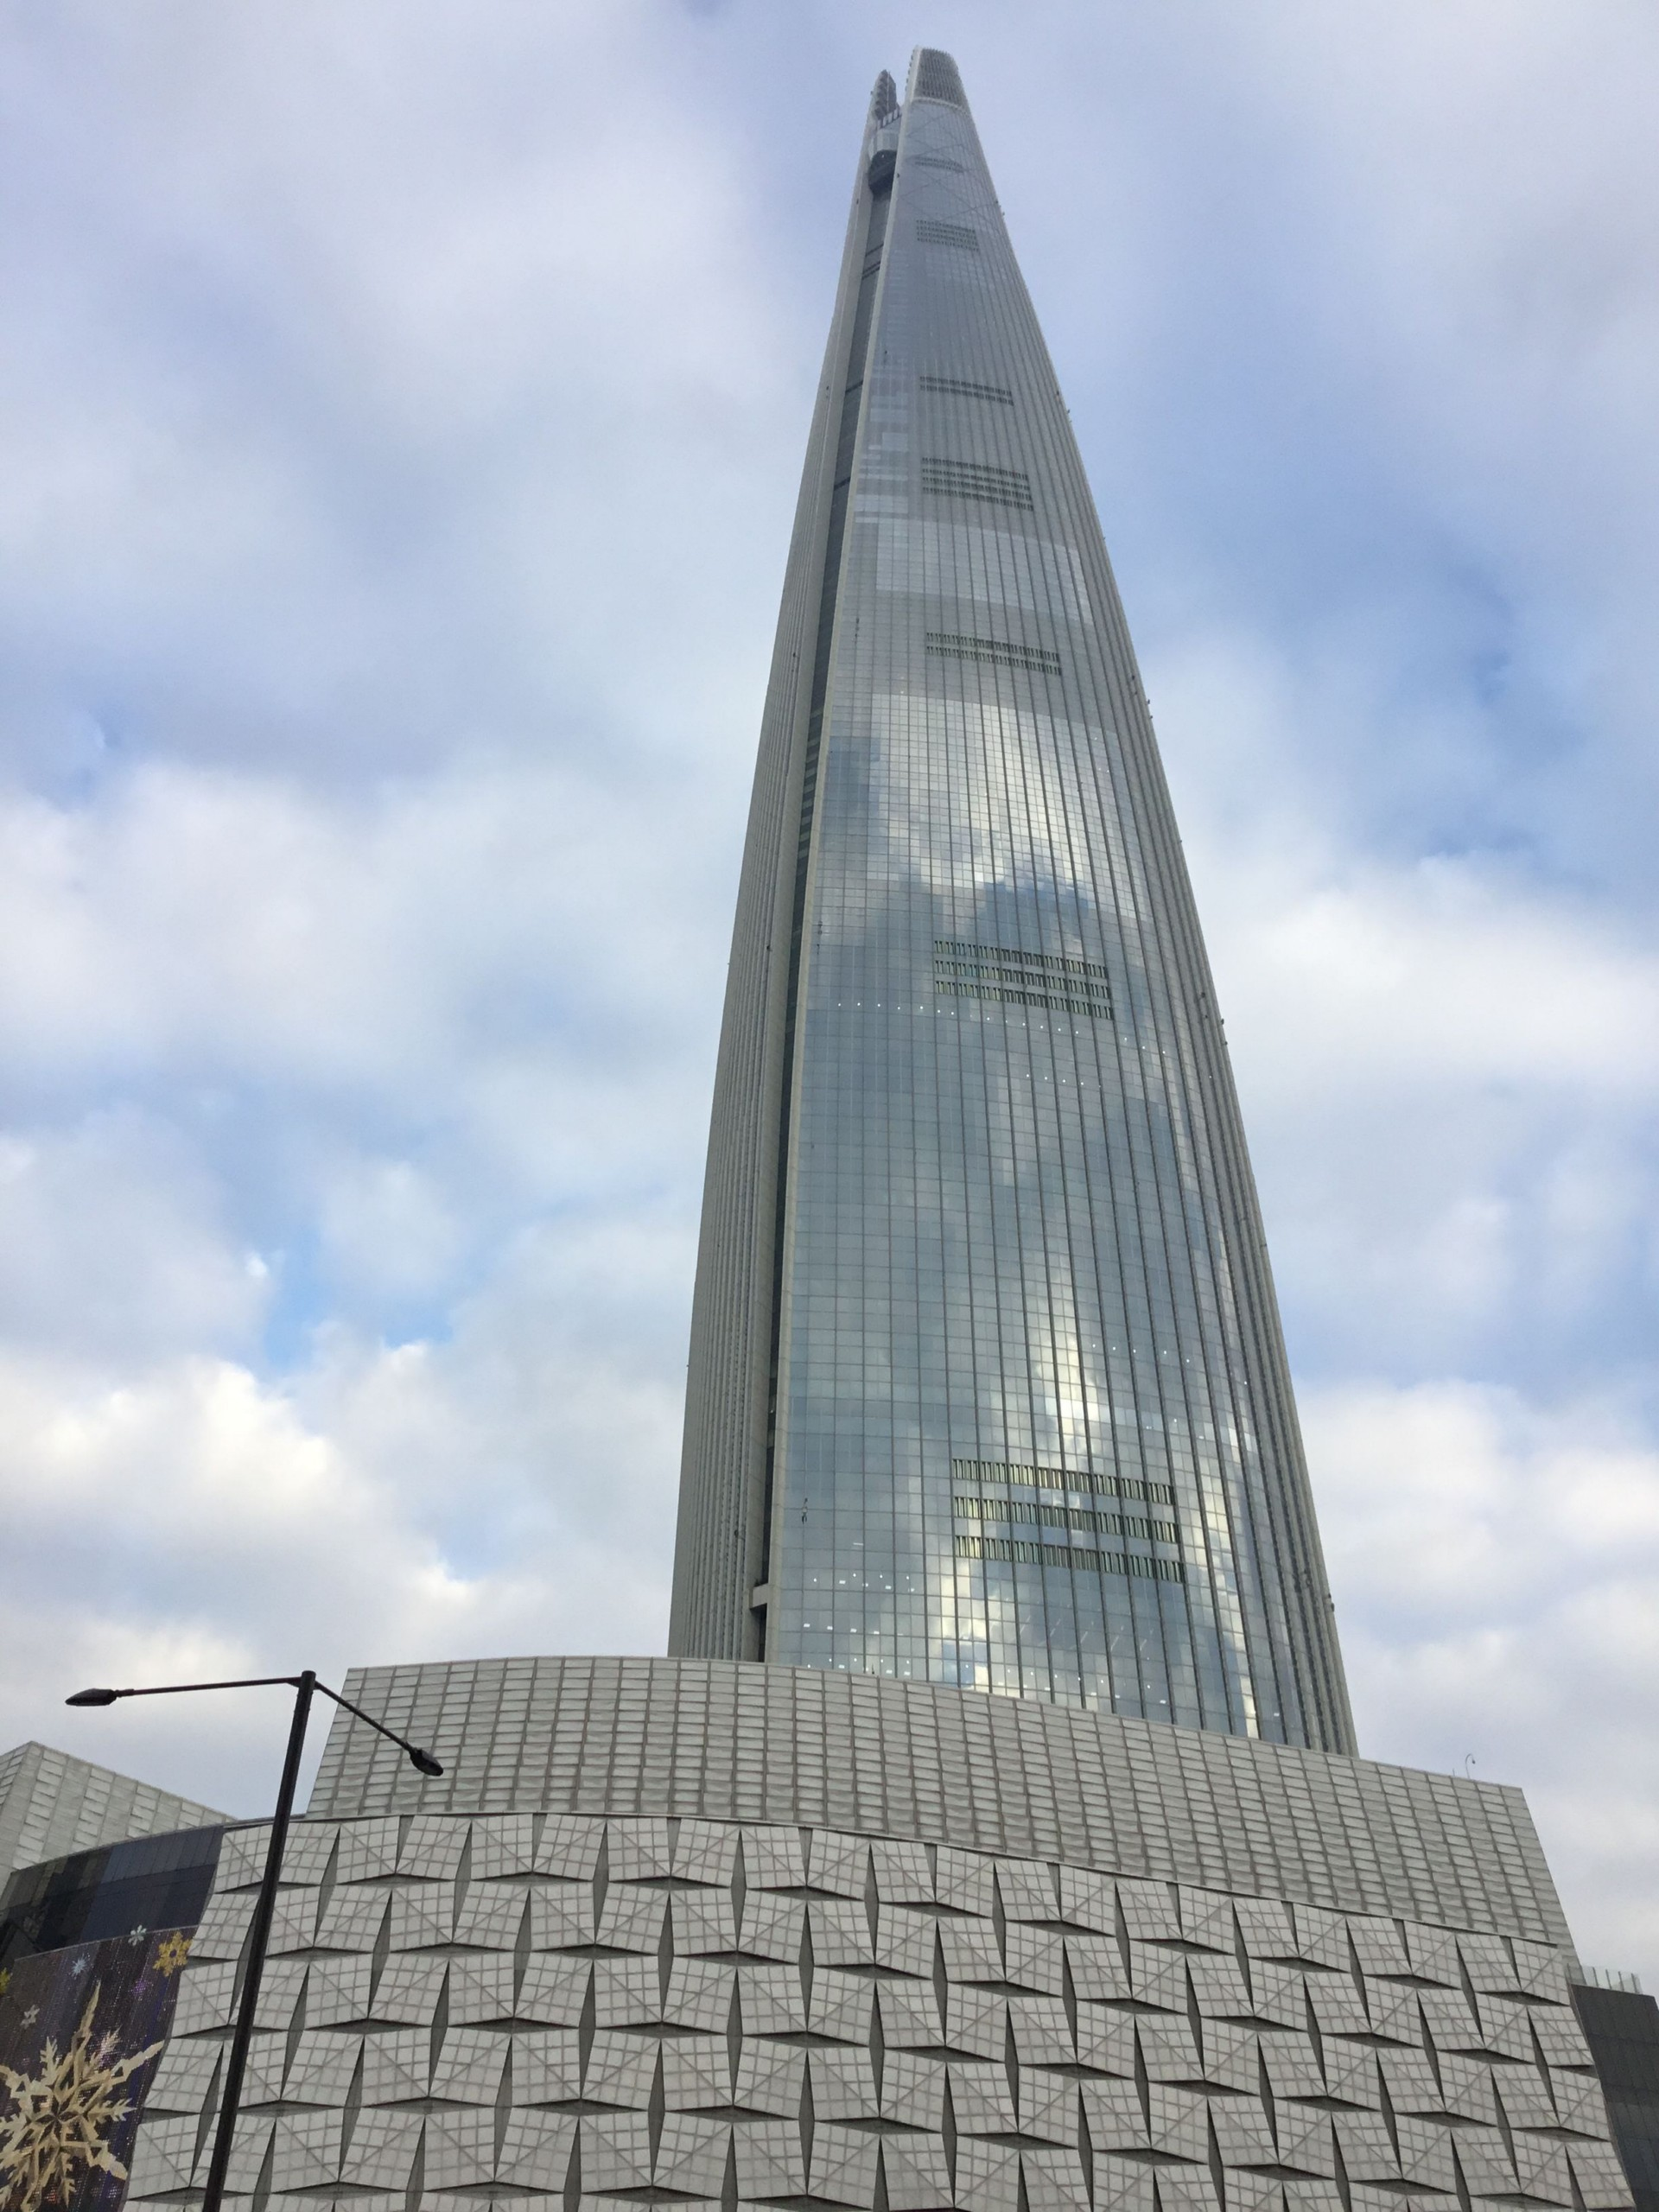 Lotte World Tower: the world's fifth tallest skyscraper is